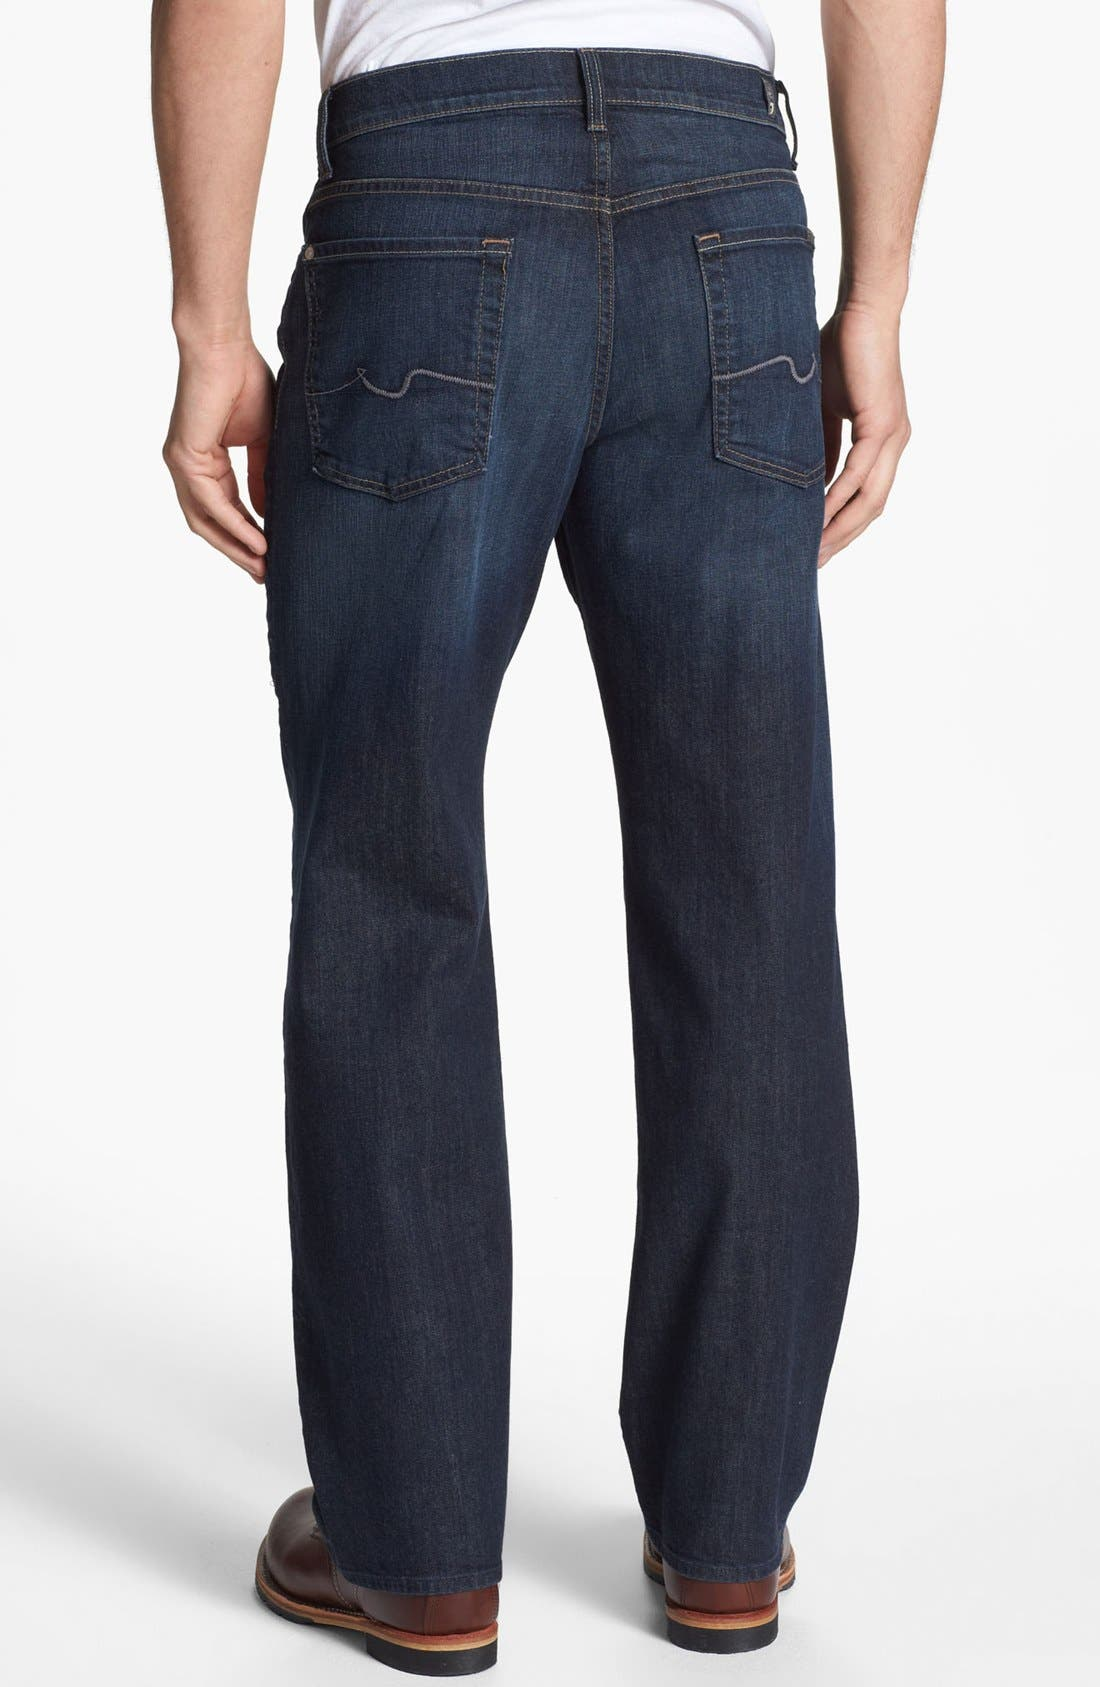 Main Image - 7 For All Mankind® Relaxed Leg Jeans (Worn Hawthorne) (Online Only)